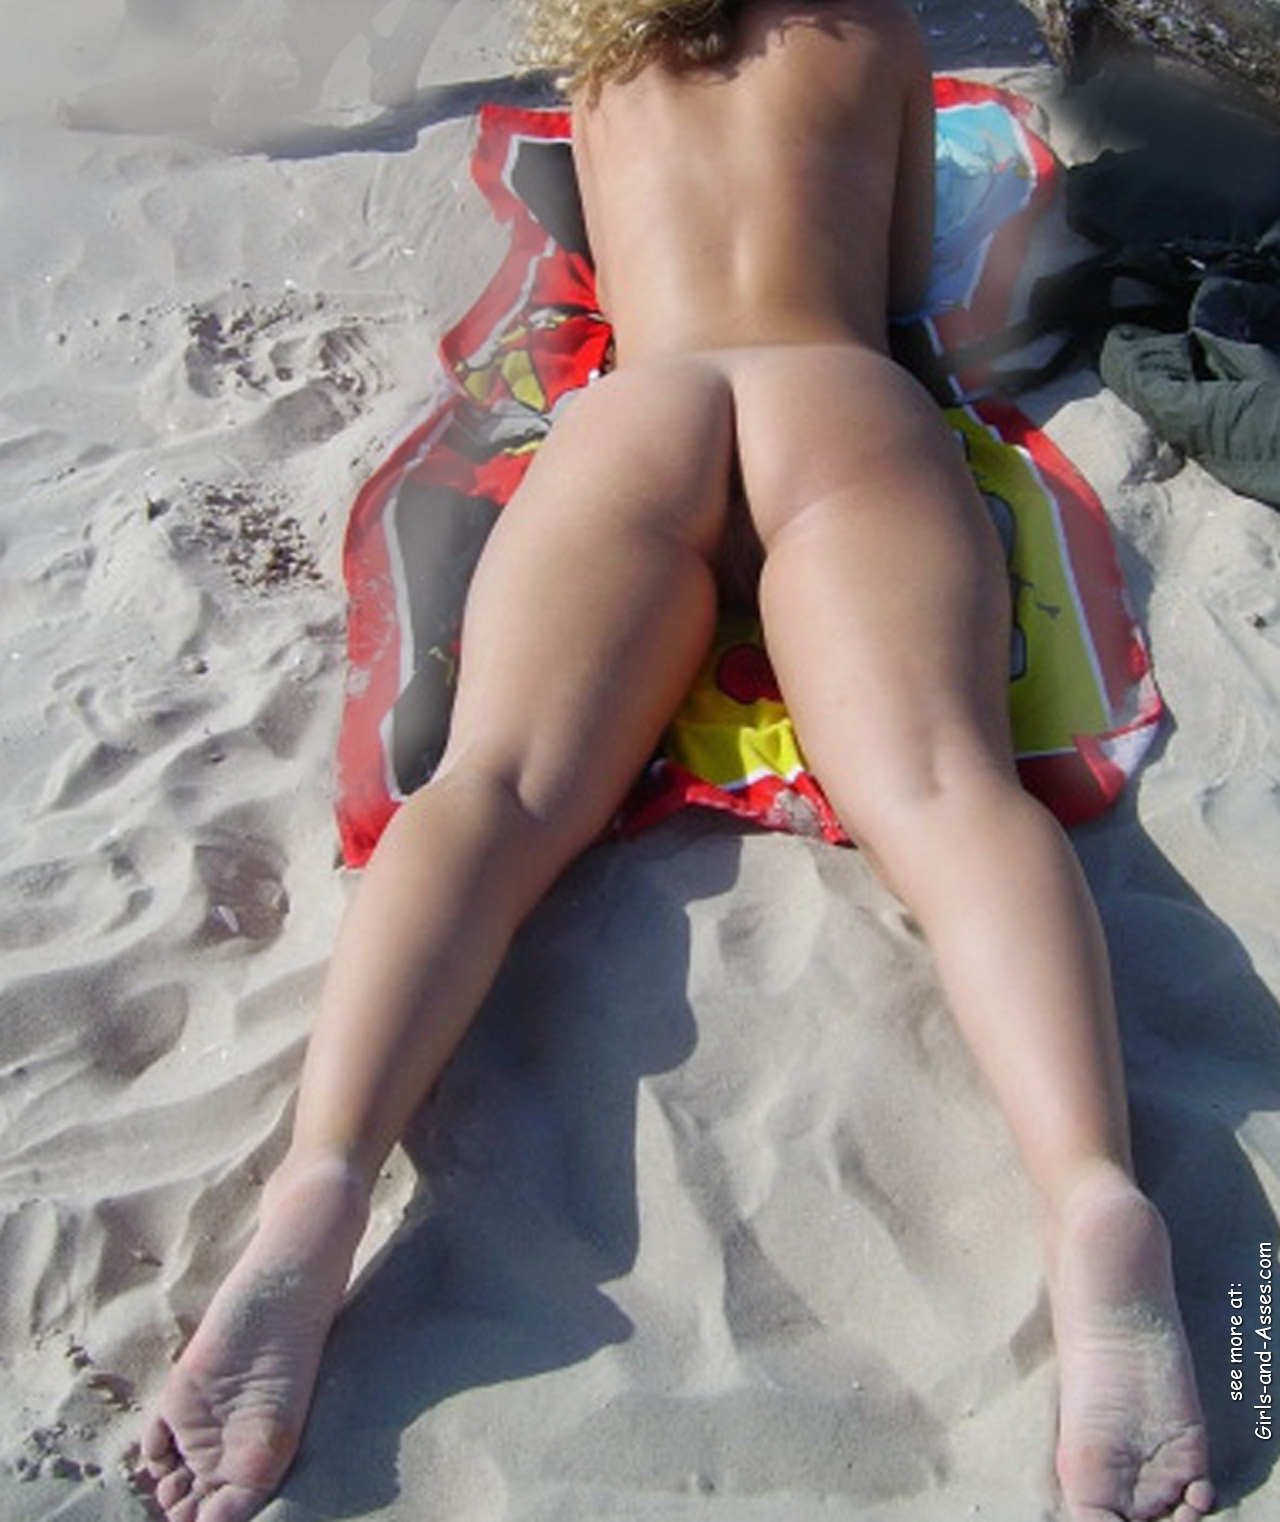 naked sunbathing tanning on the beach pic 03347